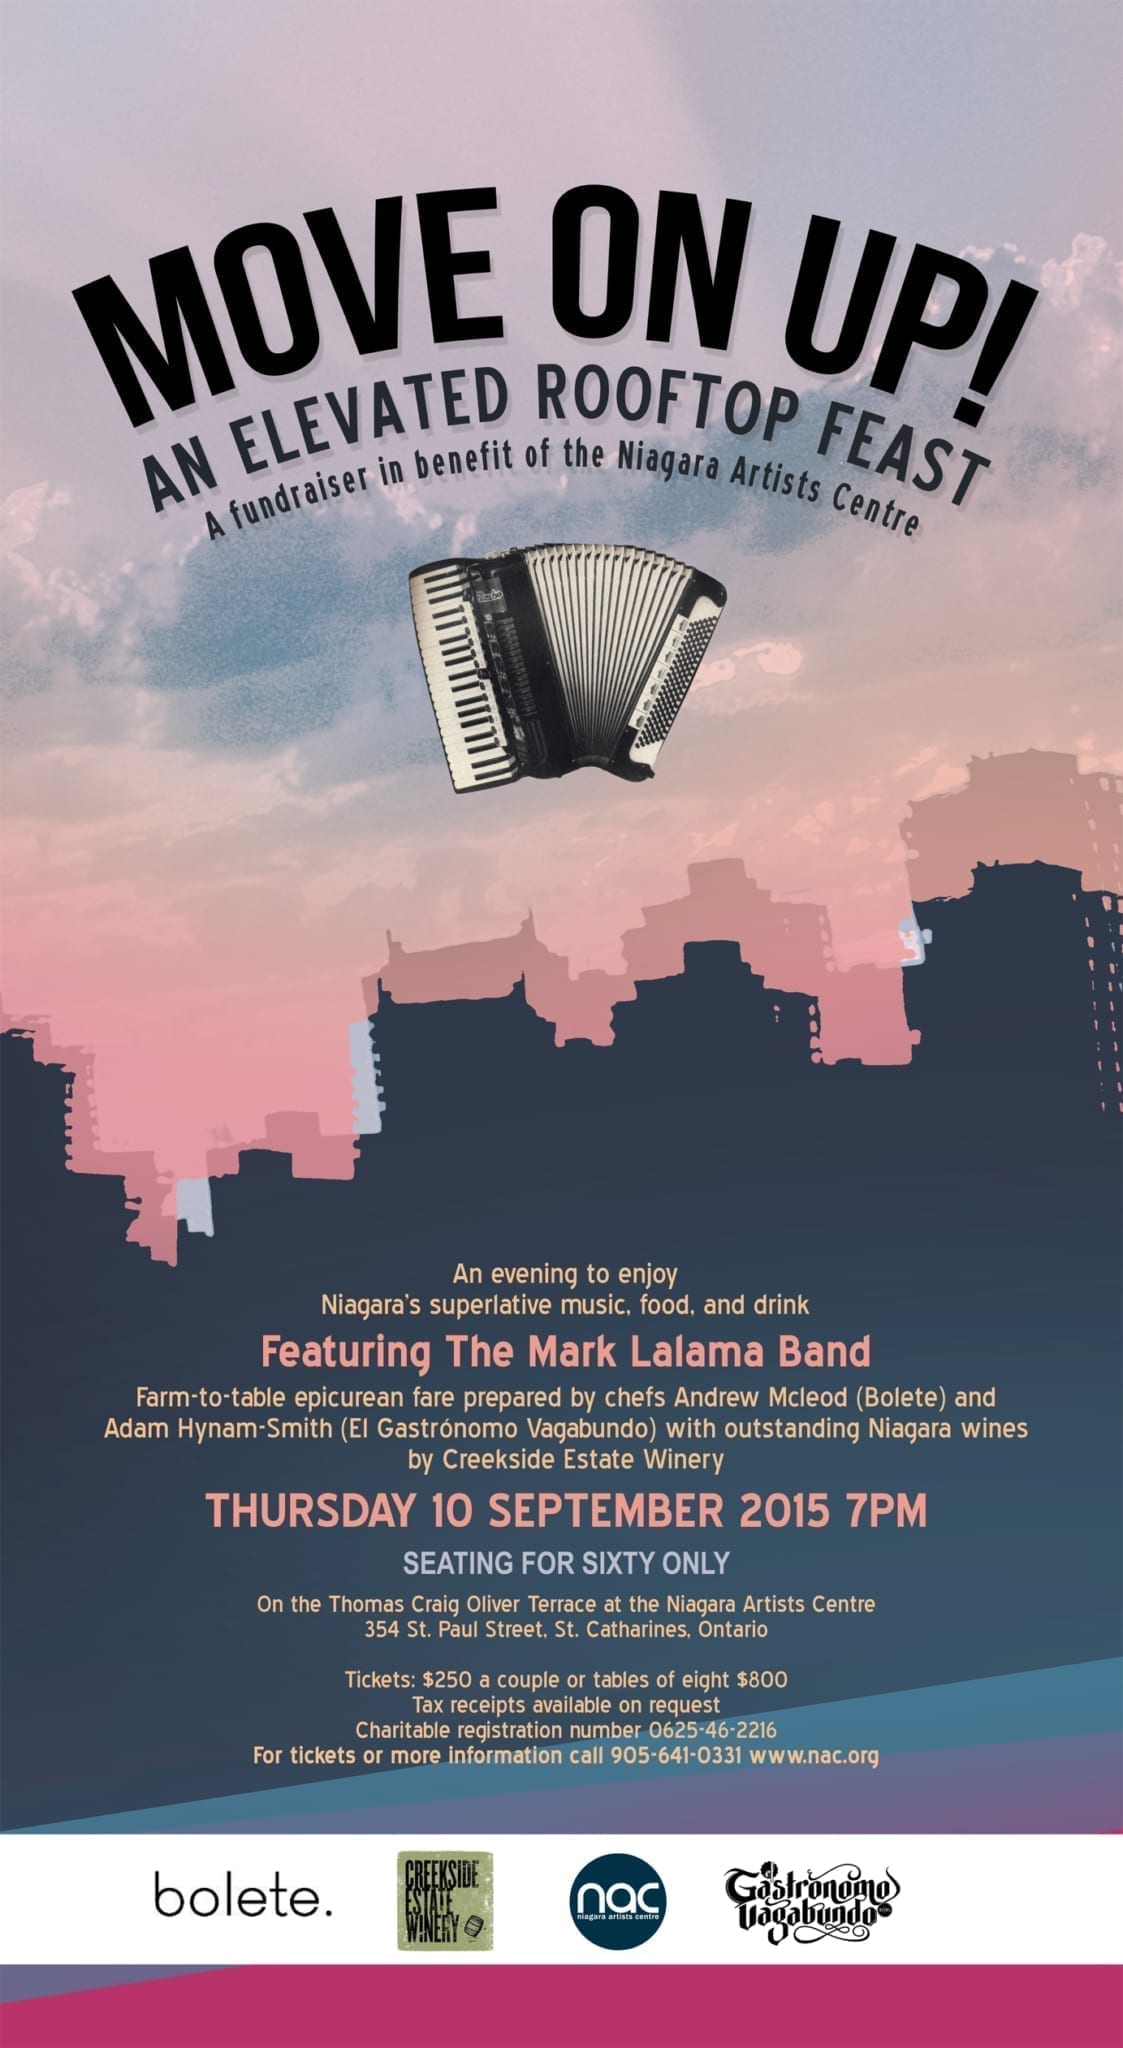 MOVE ON UP! A Fundraiser in Benefit of NAC : Thursday 10 September 2015